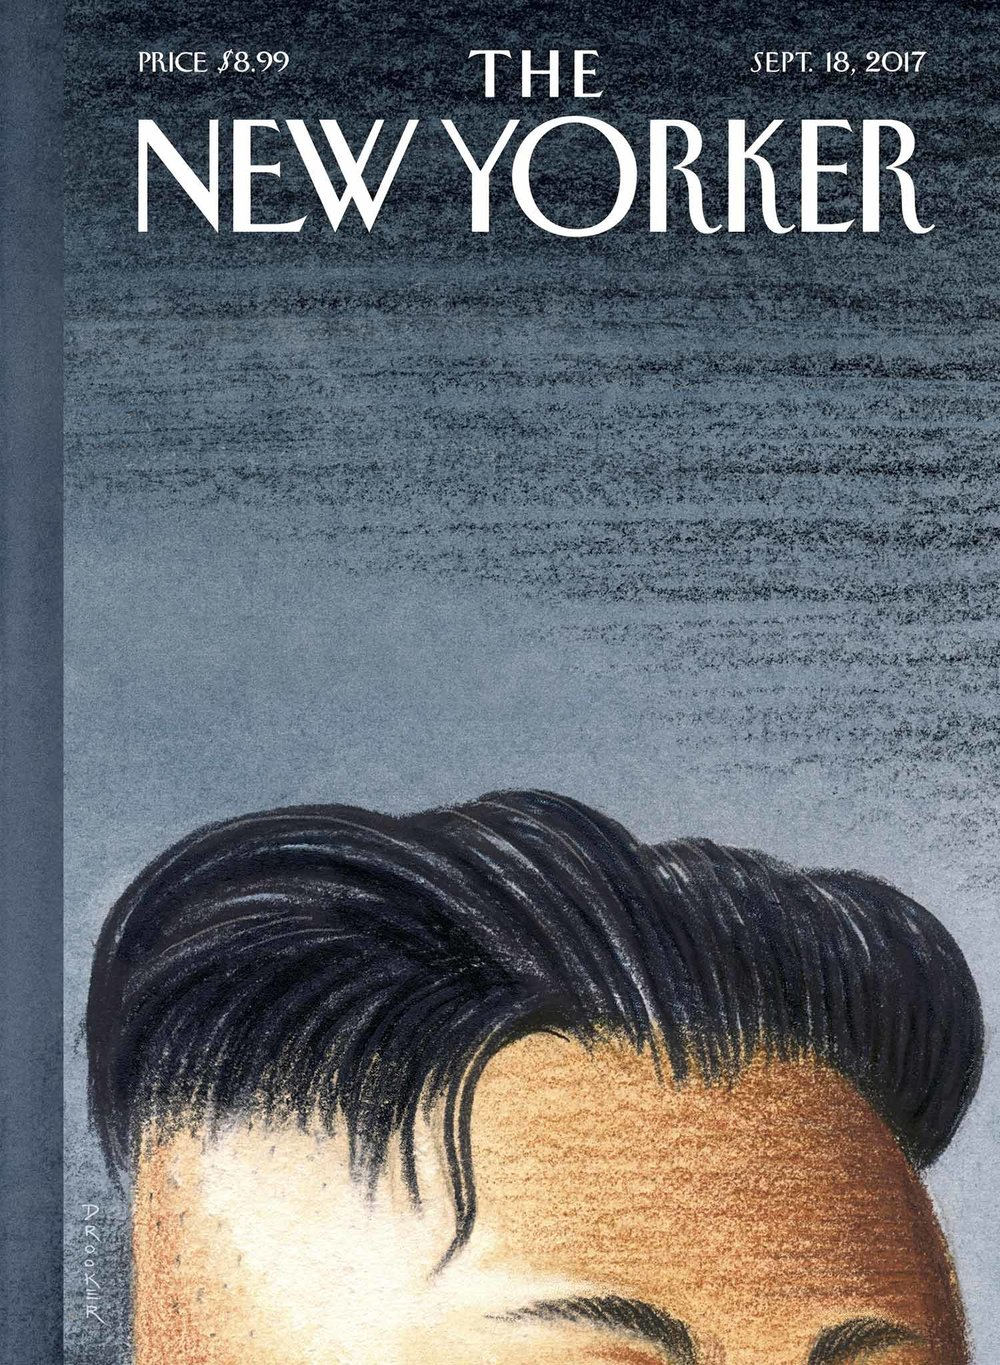 the new yorker magazine review